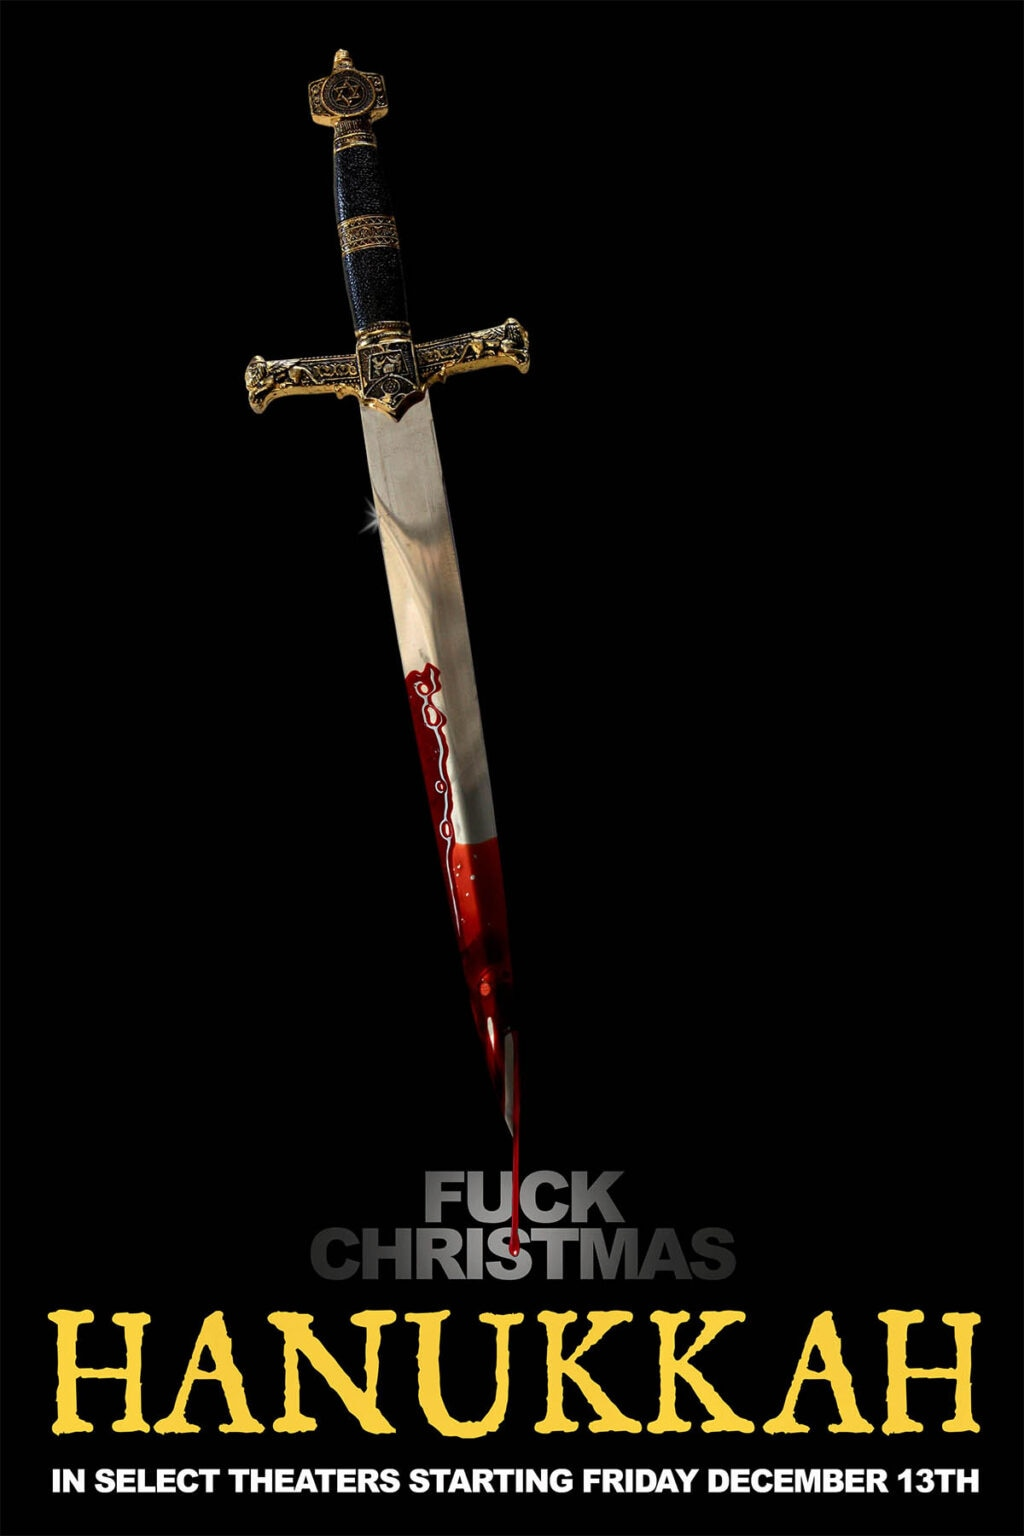 hanukkah 2019 poster 1024x1536 - F*CK Christmas! New Trailer & Poster for Sid Haig Holiday Horror HANUKKAH in Theaters 12/13